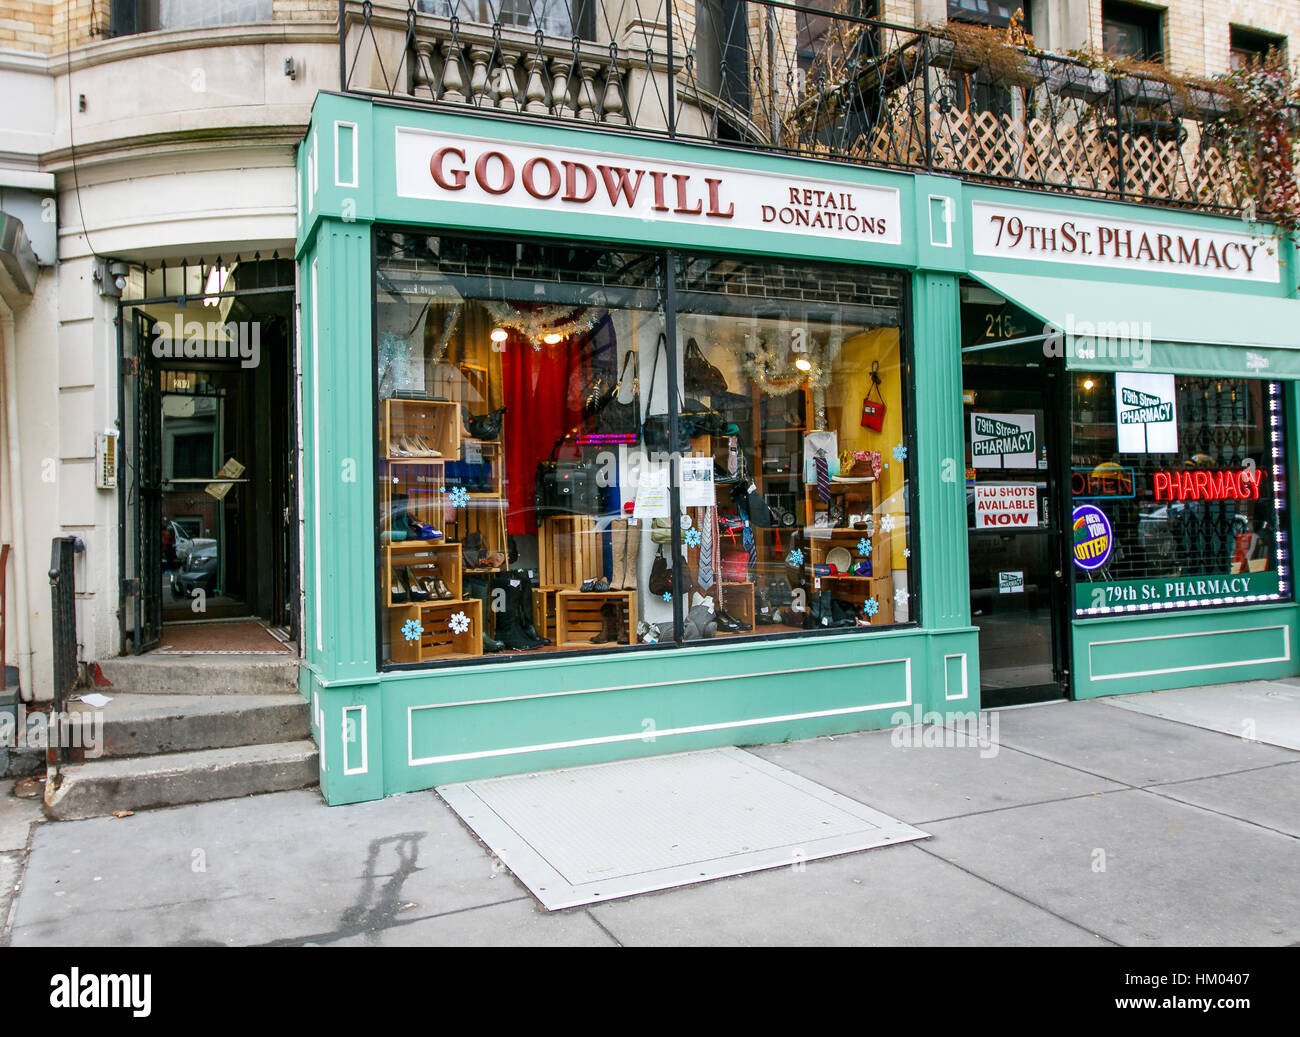 The front of a Goodwill store on west 79 street in Manhattan. - Stock Image